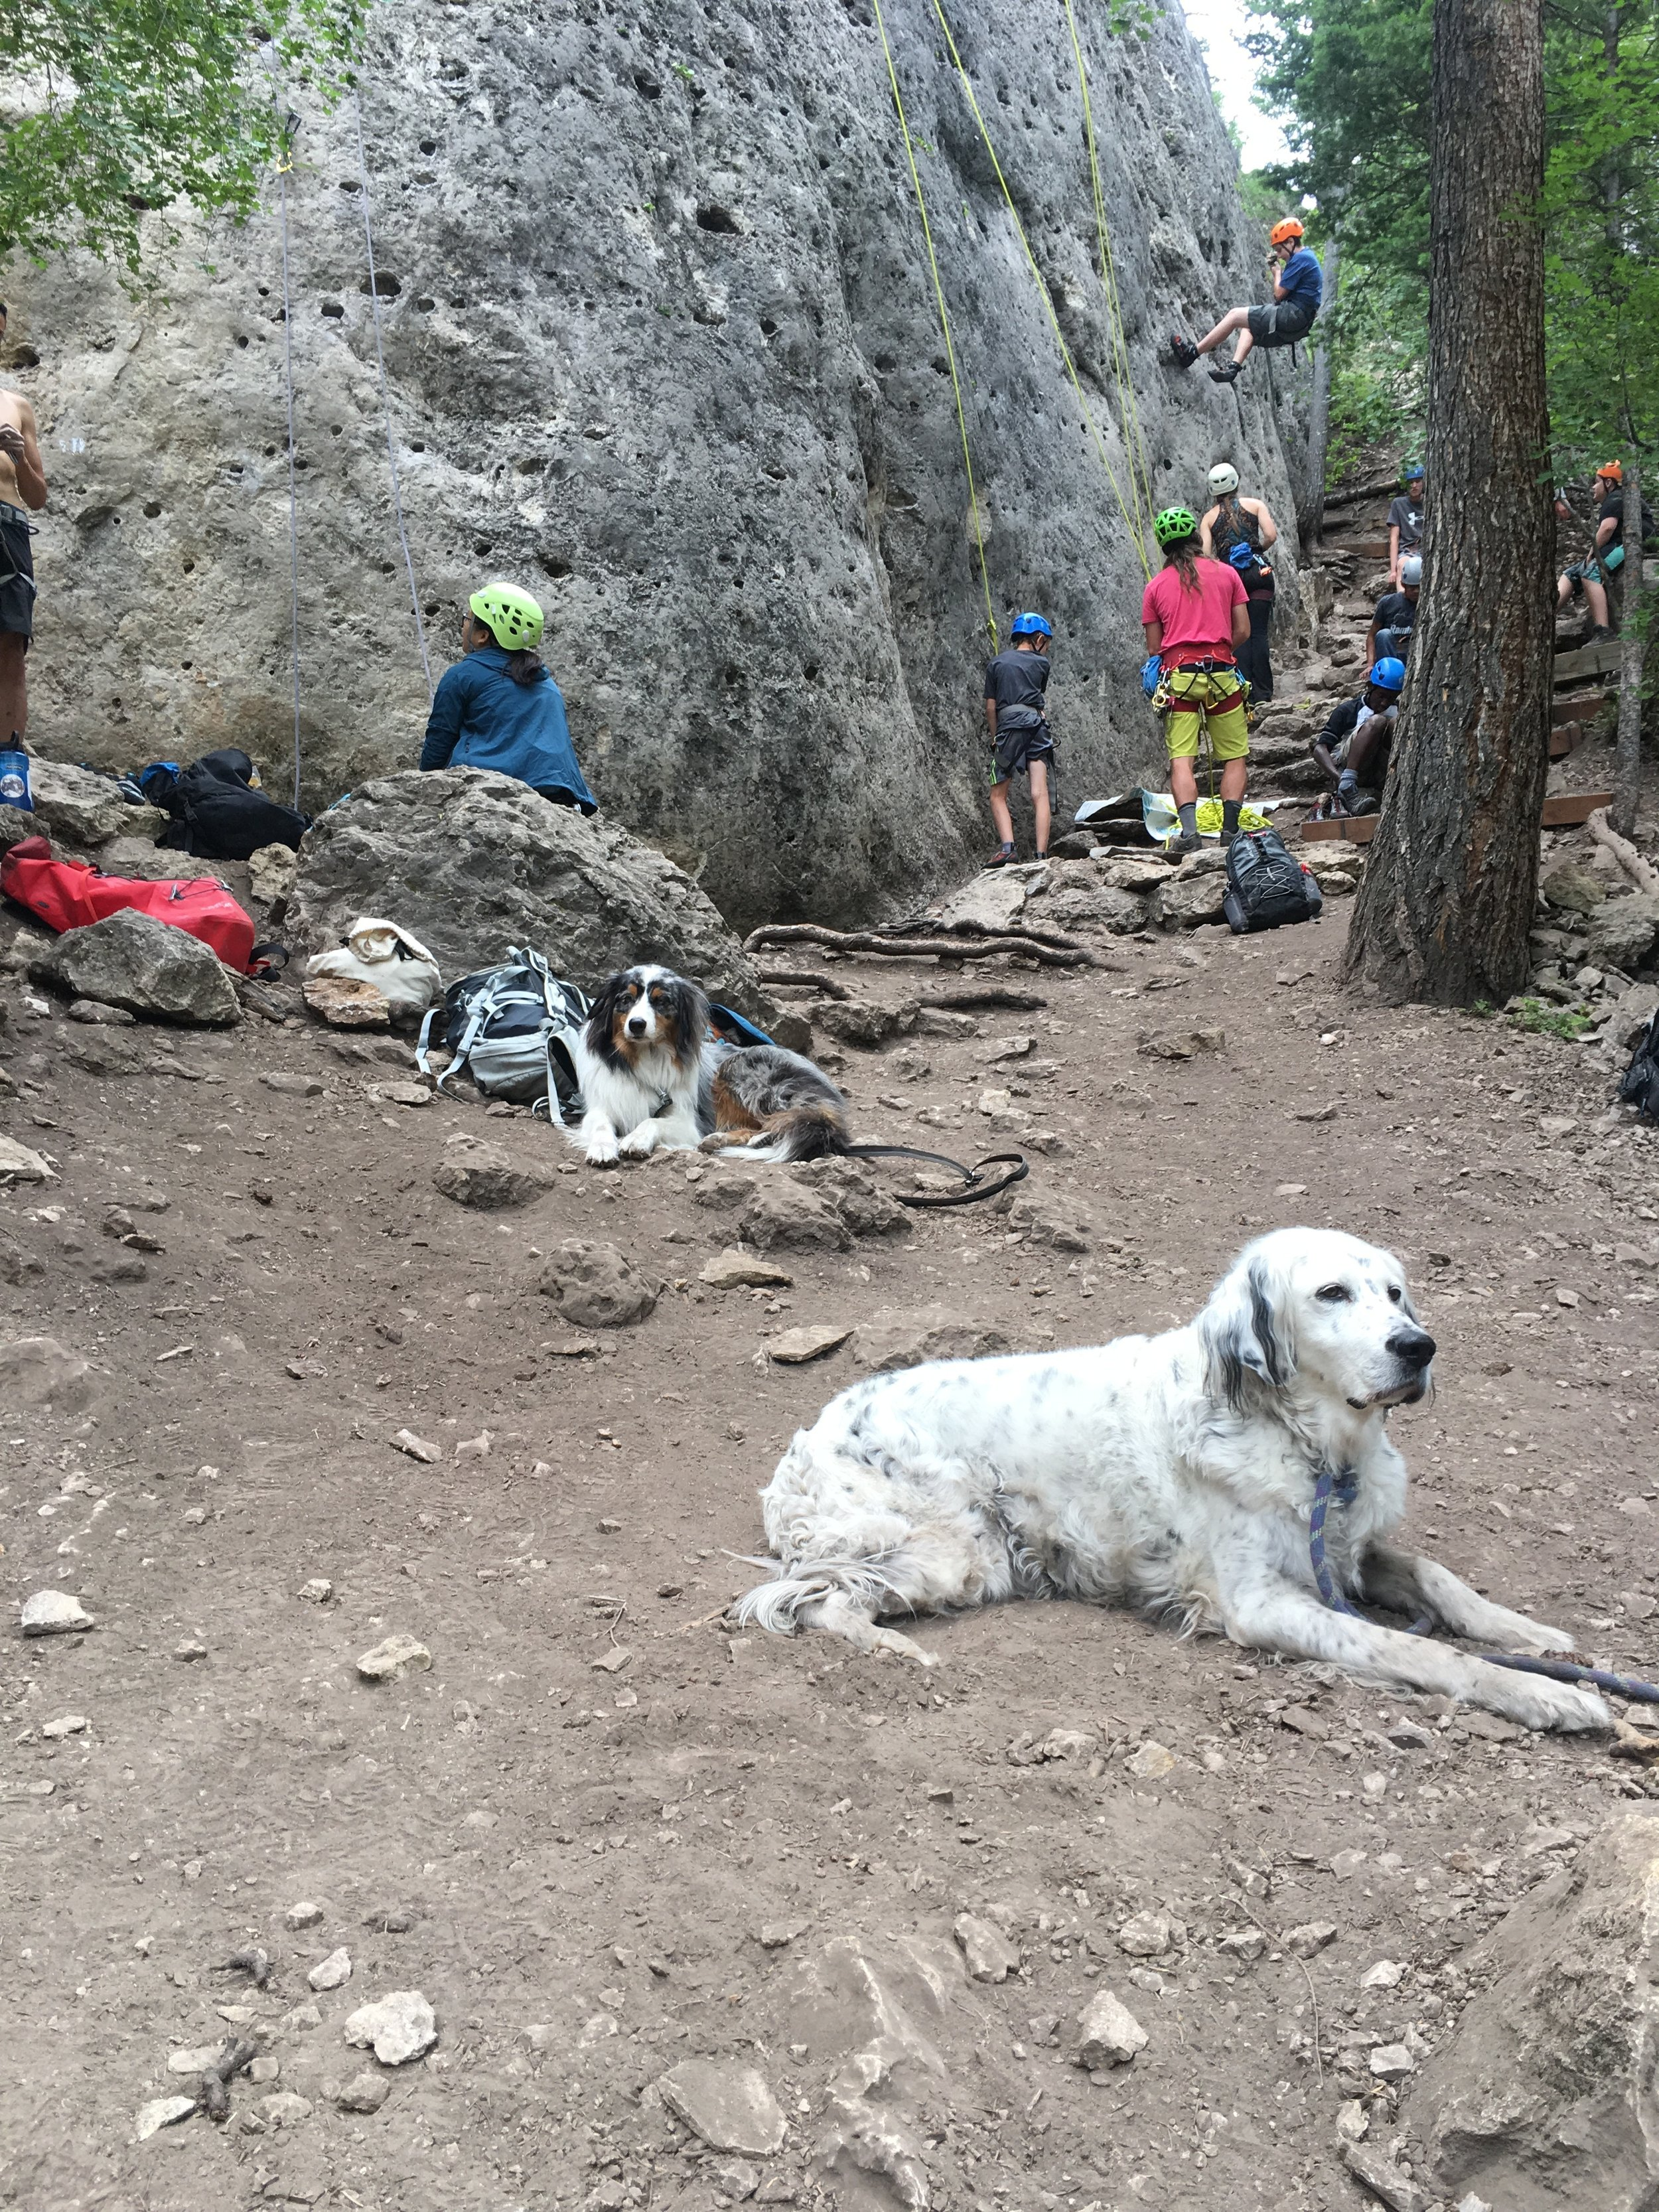 Climbing is always better with crag dogs.